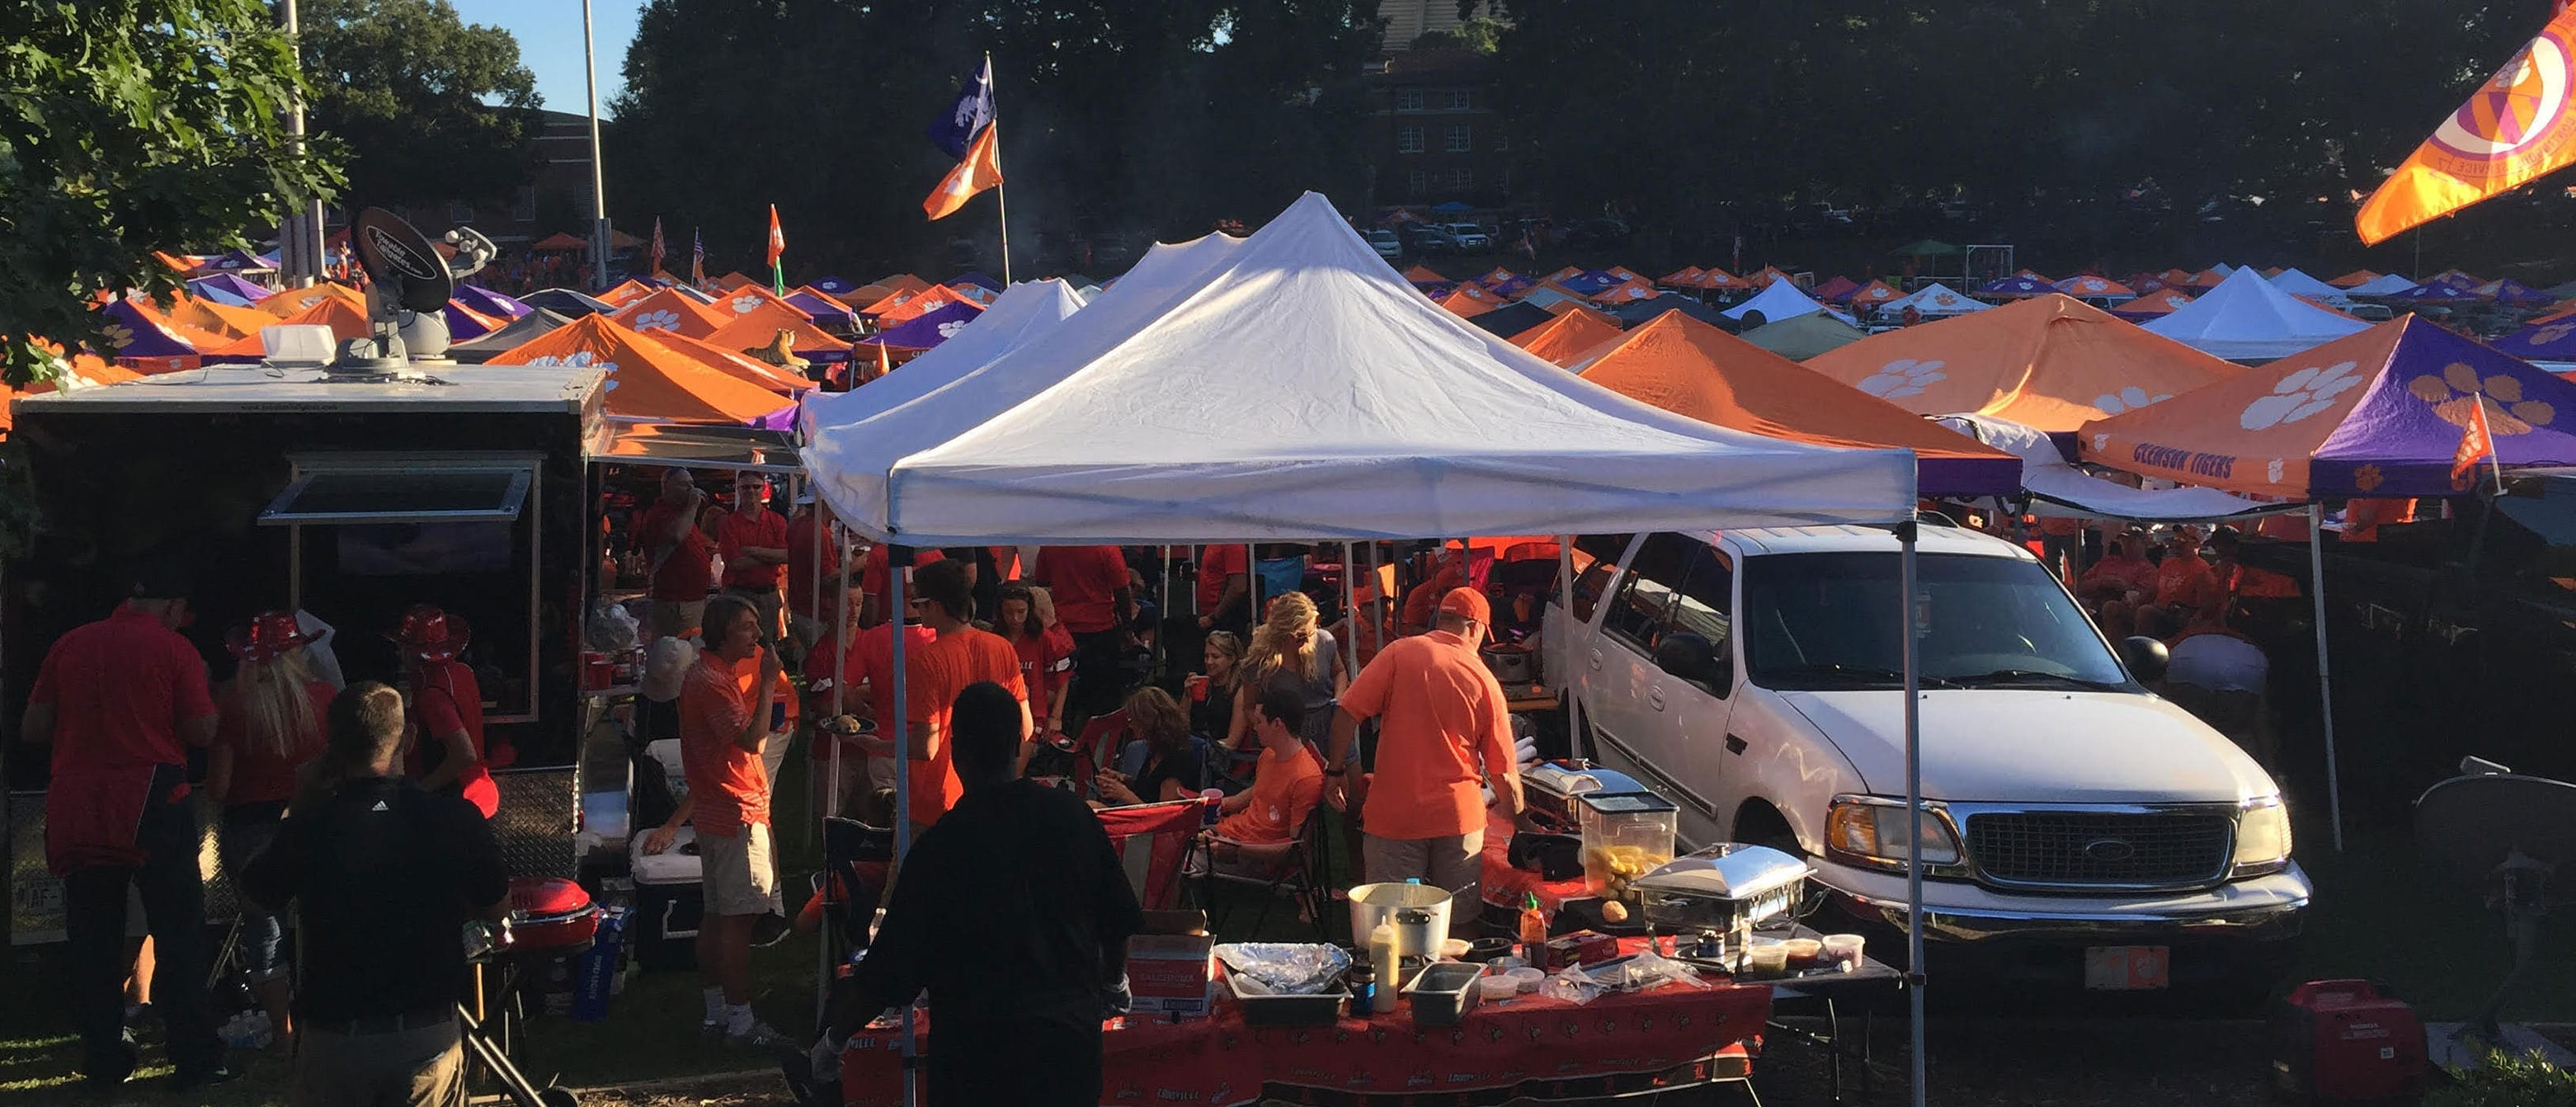 event-tailgating-services-tailgate-trailer-rentals